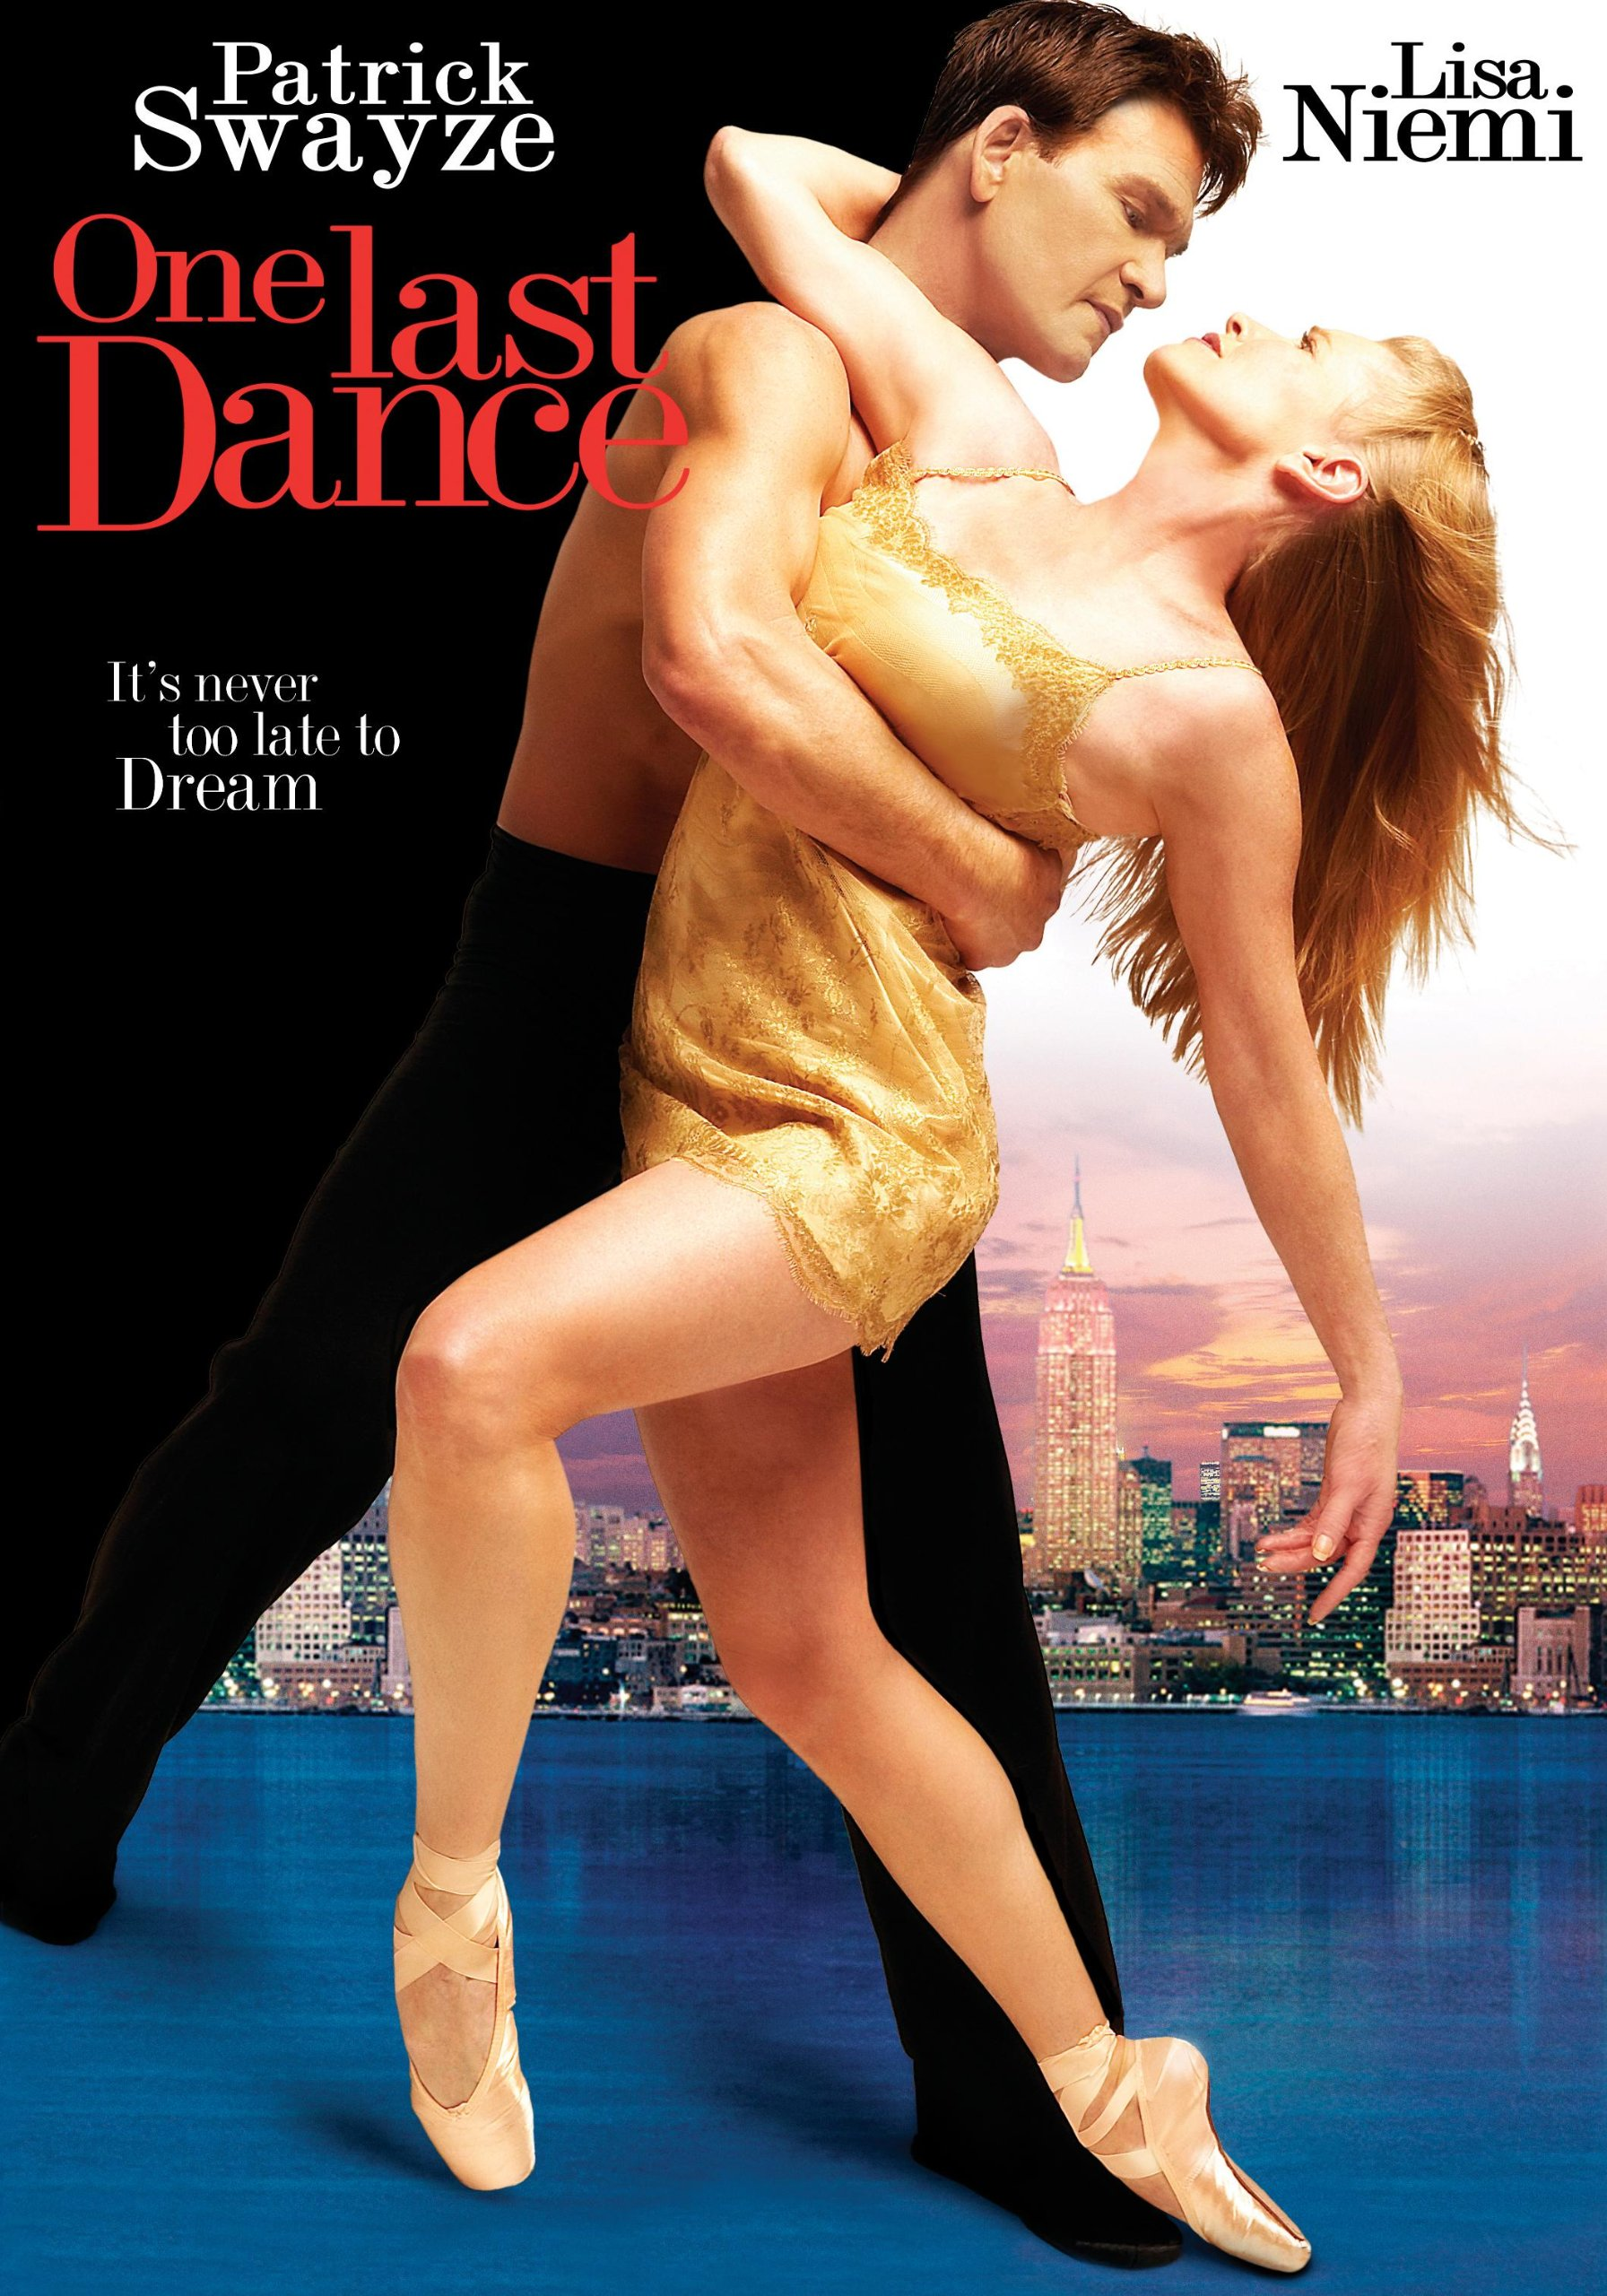 One Last Dance  | In the wake of tragedy, a renowned New York dance company is on the brink of collapse. After leaving the dance world for good, Travis (Patrick Swayze), Chrissa and Max are pulled in to resurrect the dance that shattered their careers. They have one last chance to save the company, re-connect with the passion and magic and prove that miracles really can happen.